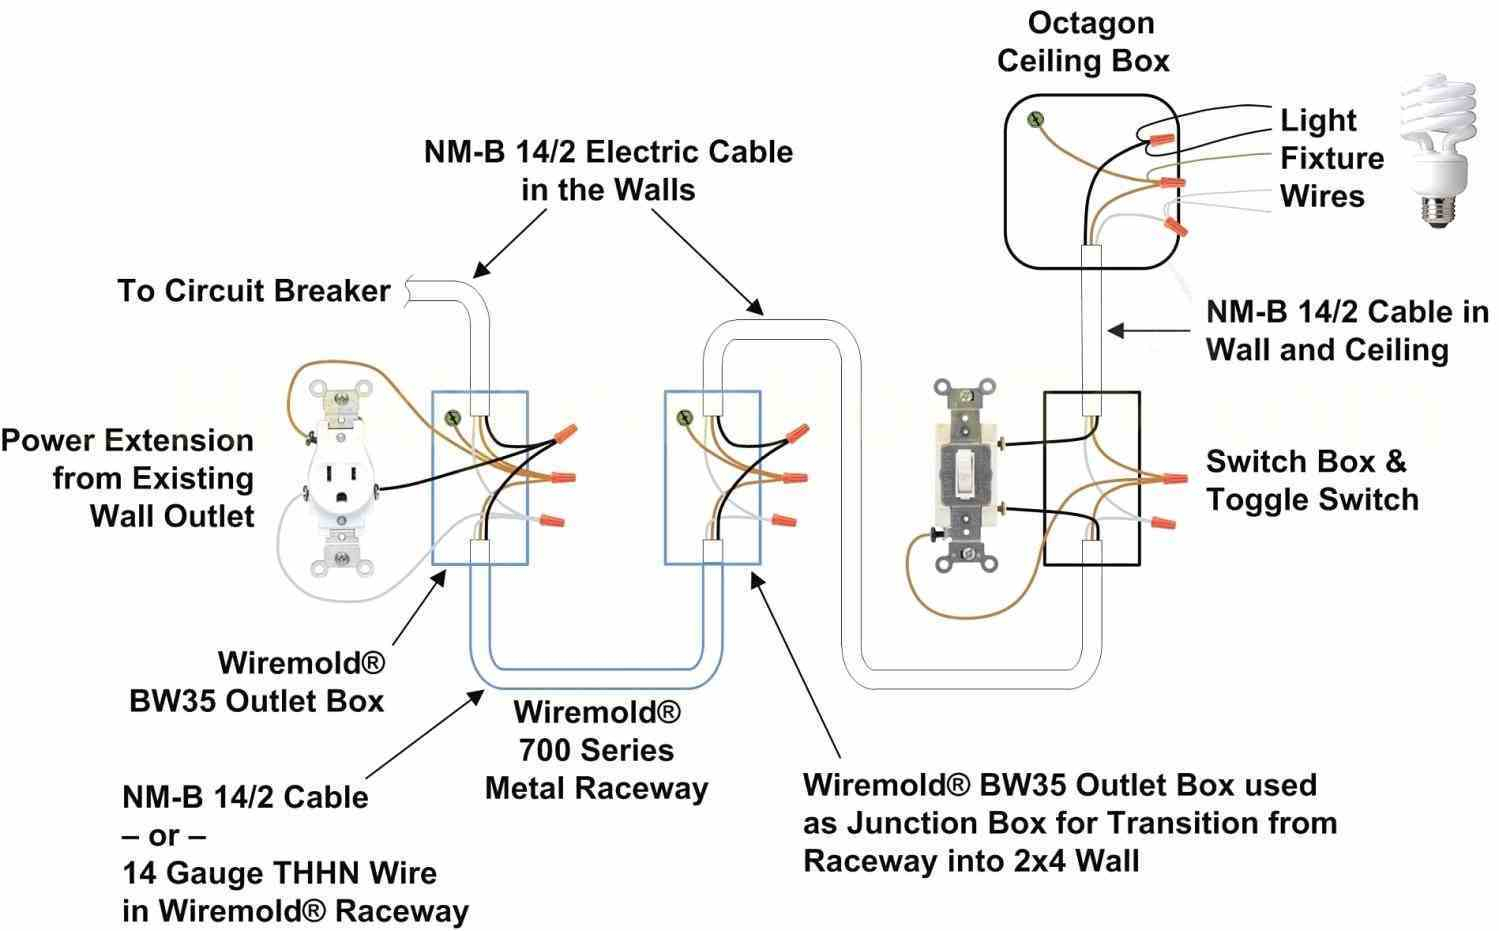 Switch Wiring Outlet Install Diagrams Light From Receptacle Diagram - Wiring A Switched Outlet Wiring Diagram – Power To Receptacle